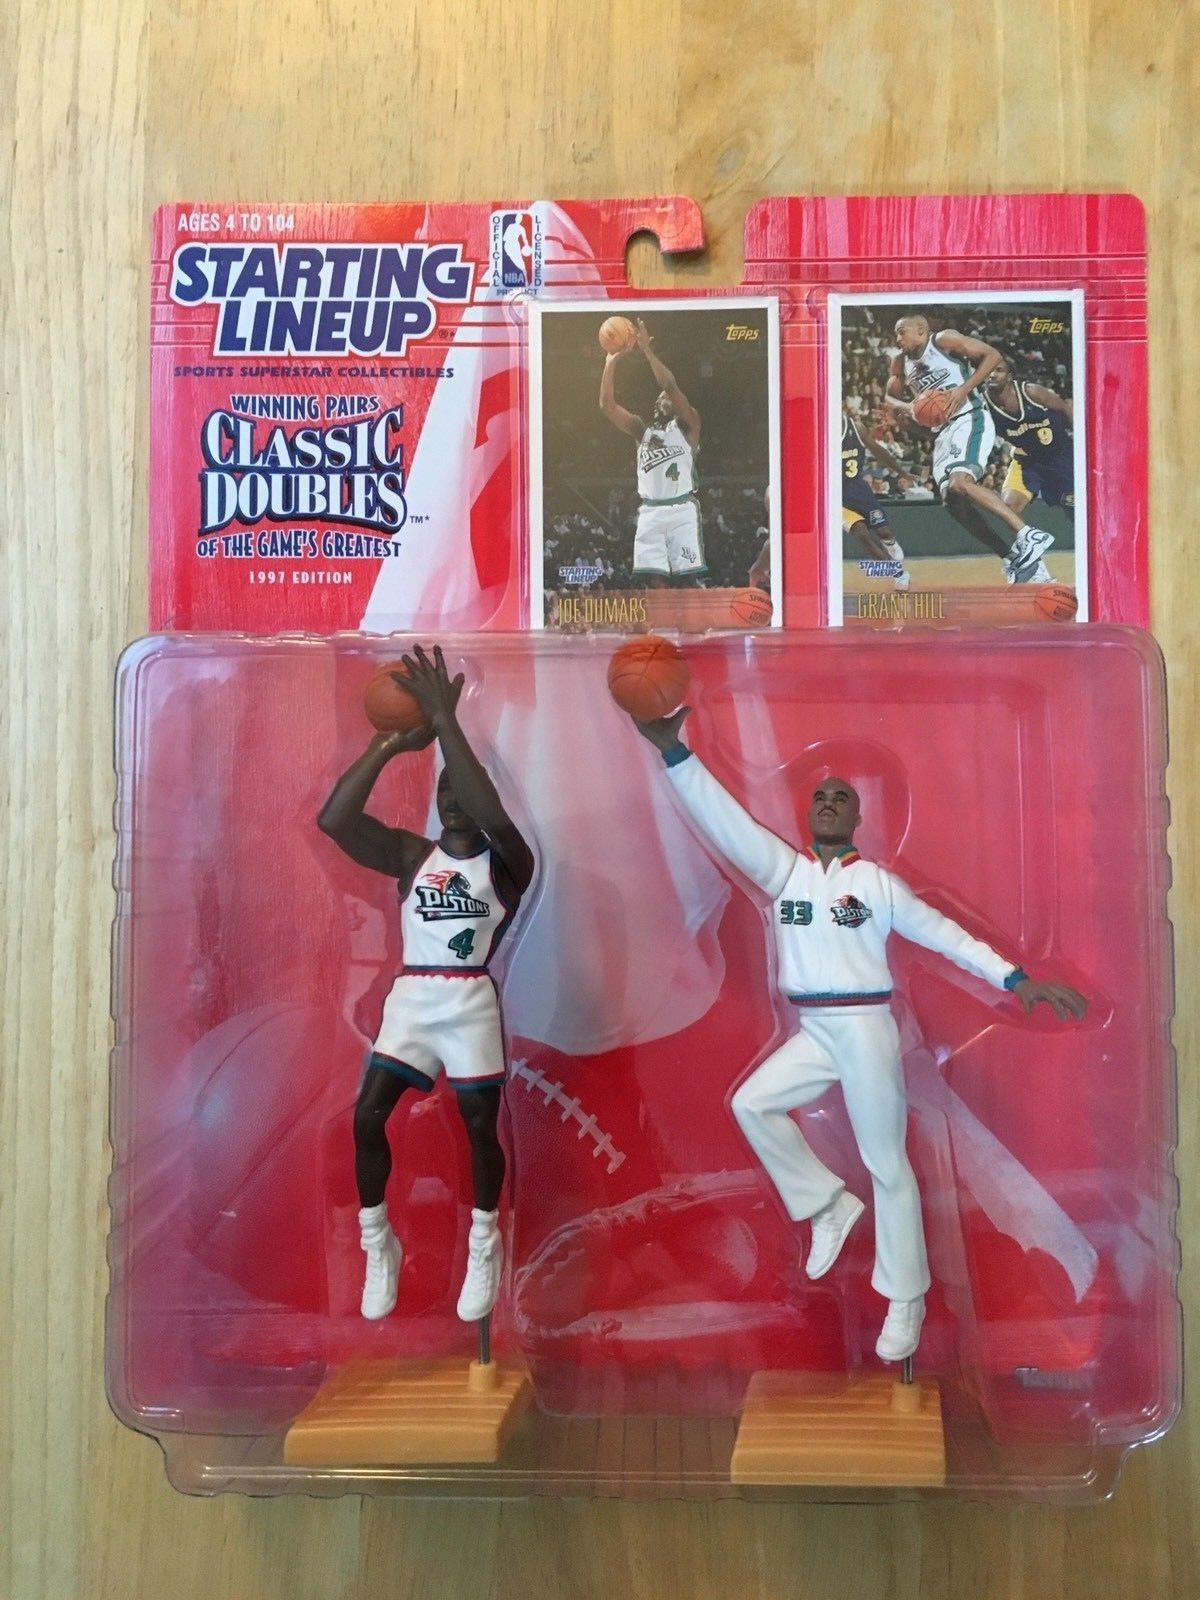 Starting Lineup 1997 Joe Dumars Grant Hill Detroit Pistons NBA Classic Doubles